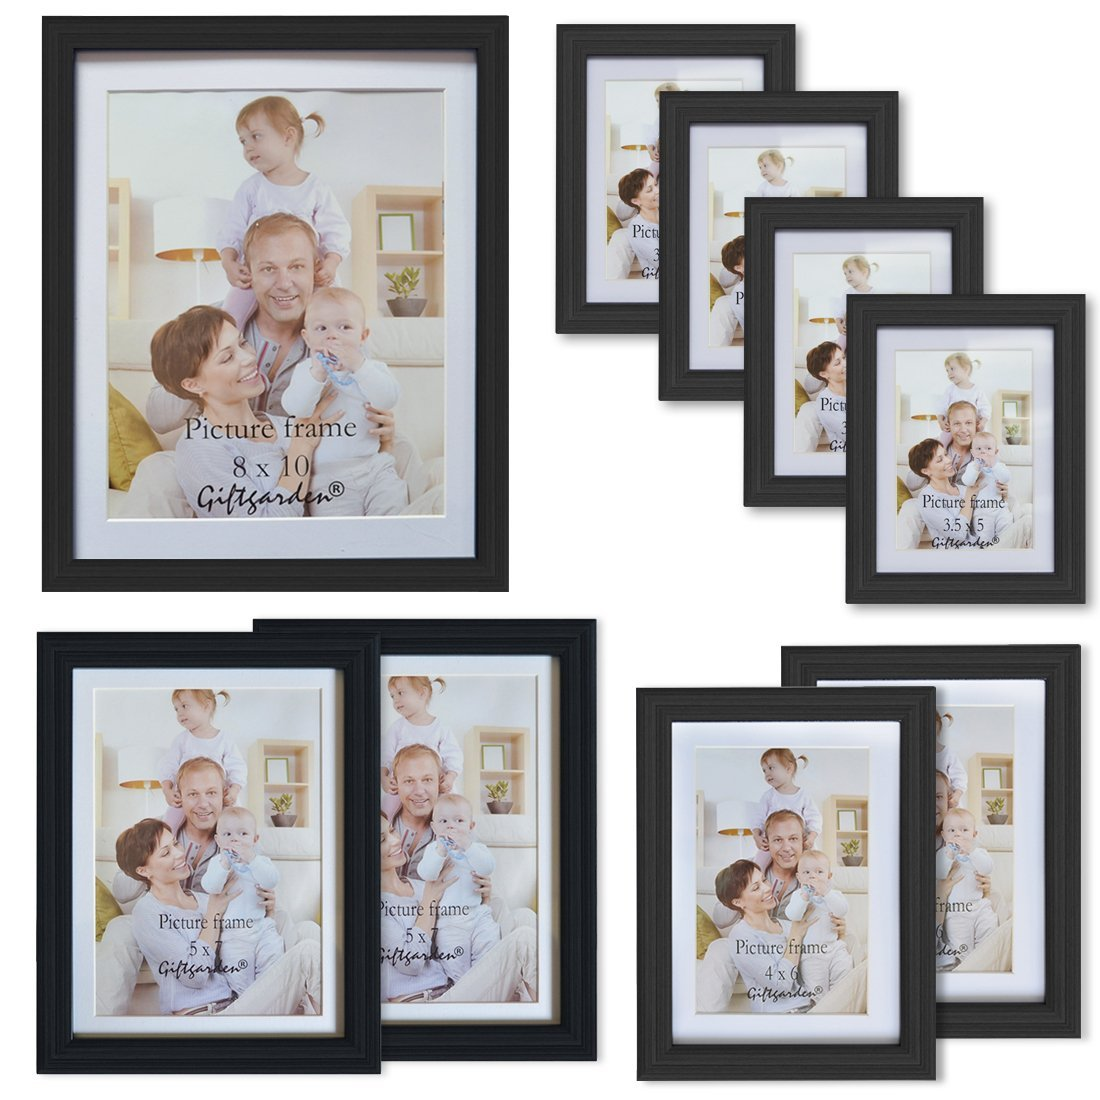 Giftgarden 9-Piece Multi Pack Black Picture Frames Wall Gallery Kit White Mat, One 8x10, Two 5x7, Two 4x6, Four 3.5x5